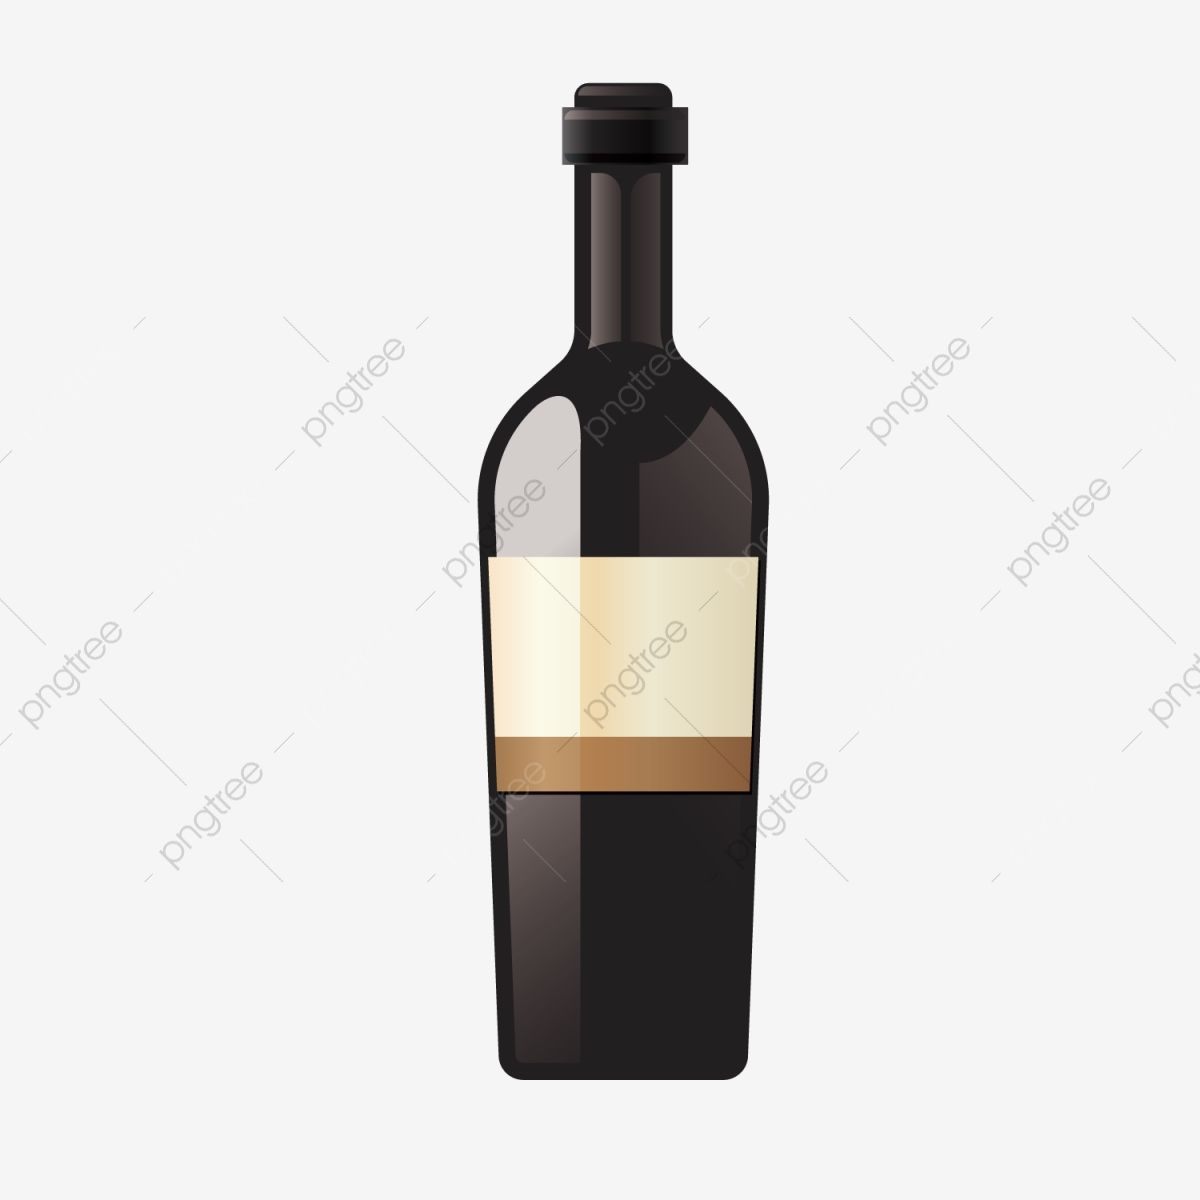 Red Wine Bottle Empty Wine Bottle Cartoon Wine Bottle Cartoon Illustration Creative Cartoon Illustration Png And Vector With Transparent Background For Free Red Wine Bottle Wine Bottle Empty Wine Bottles